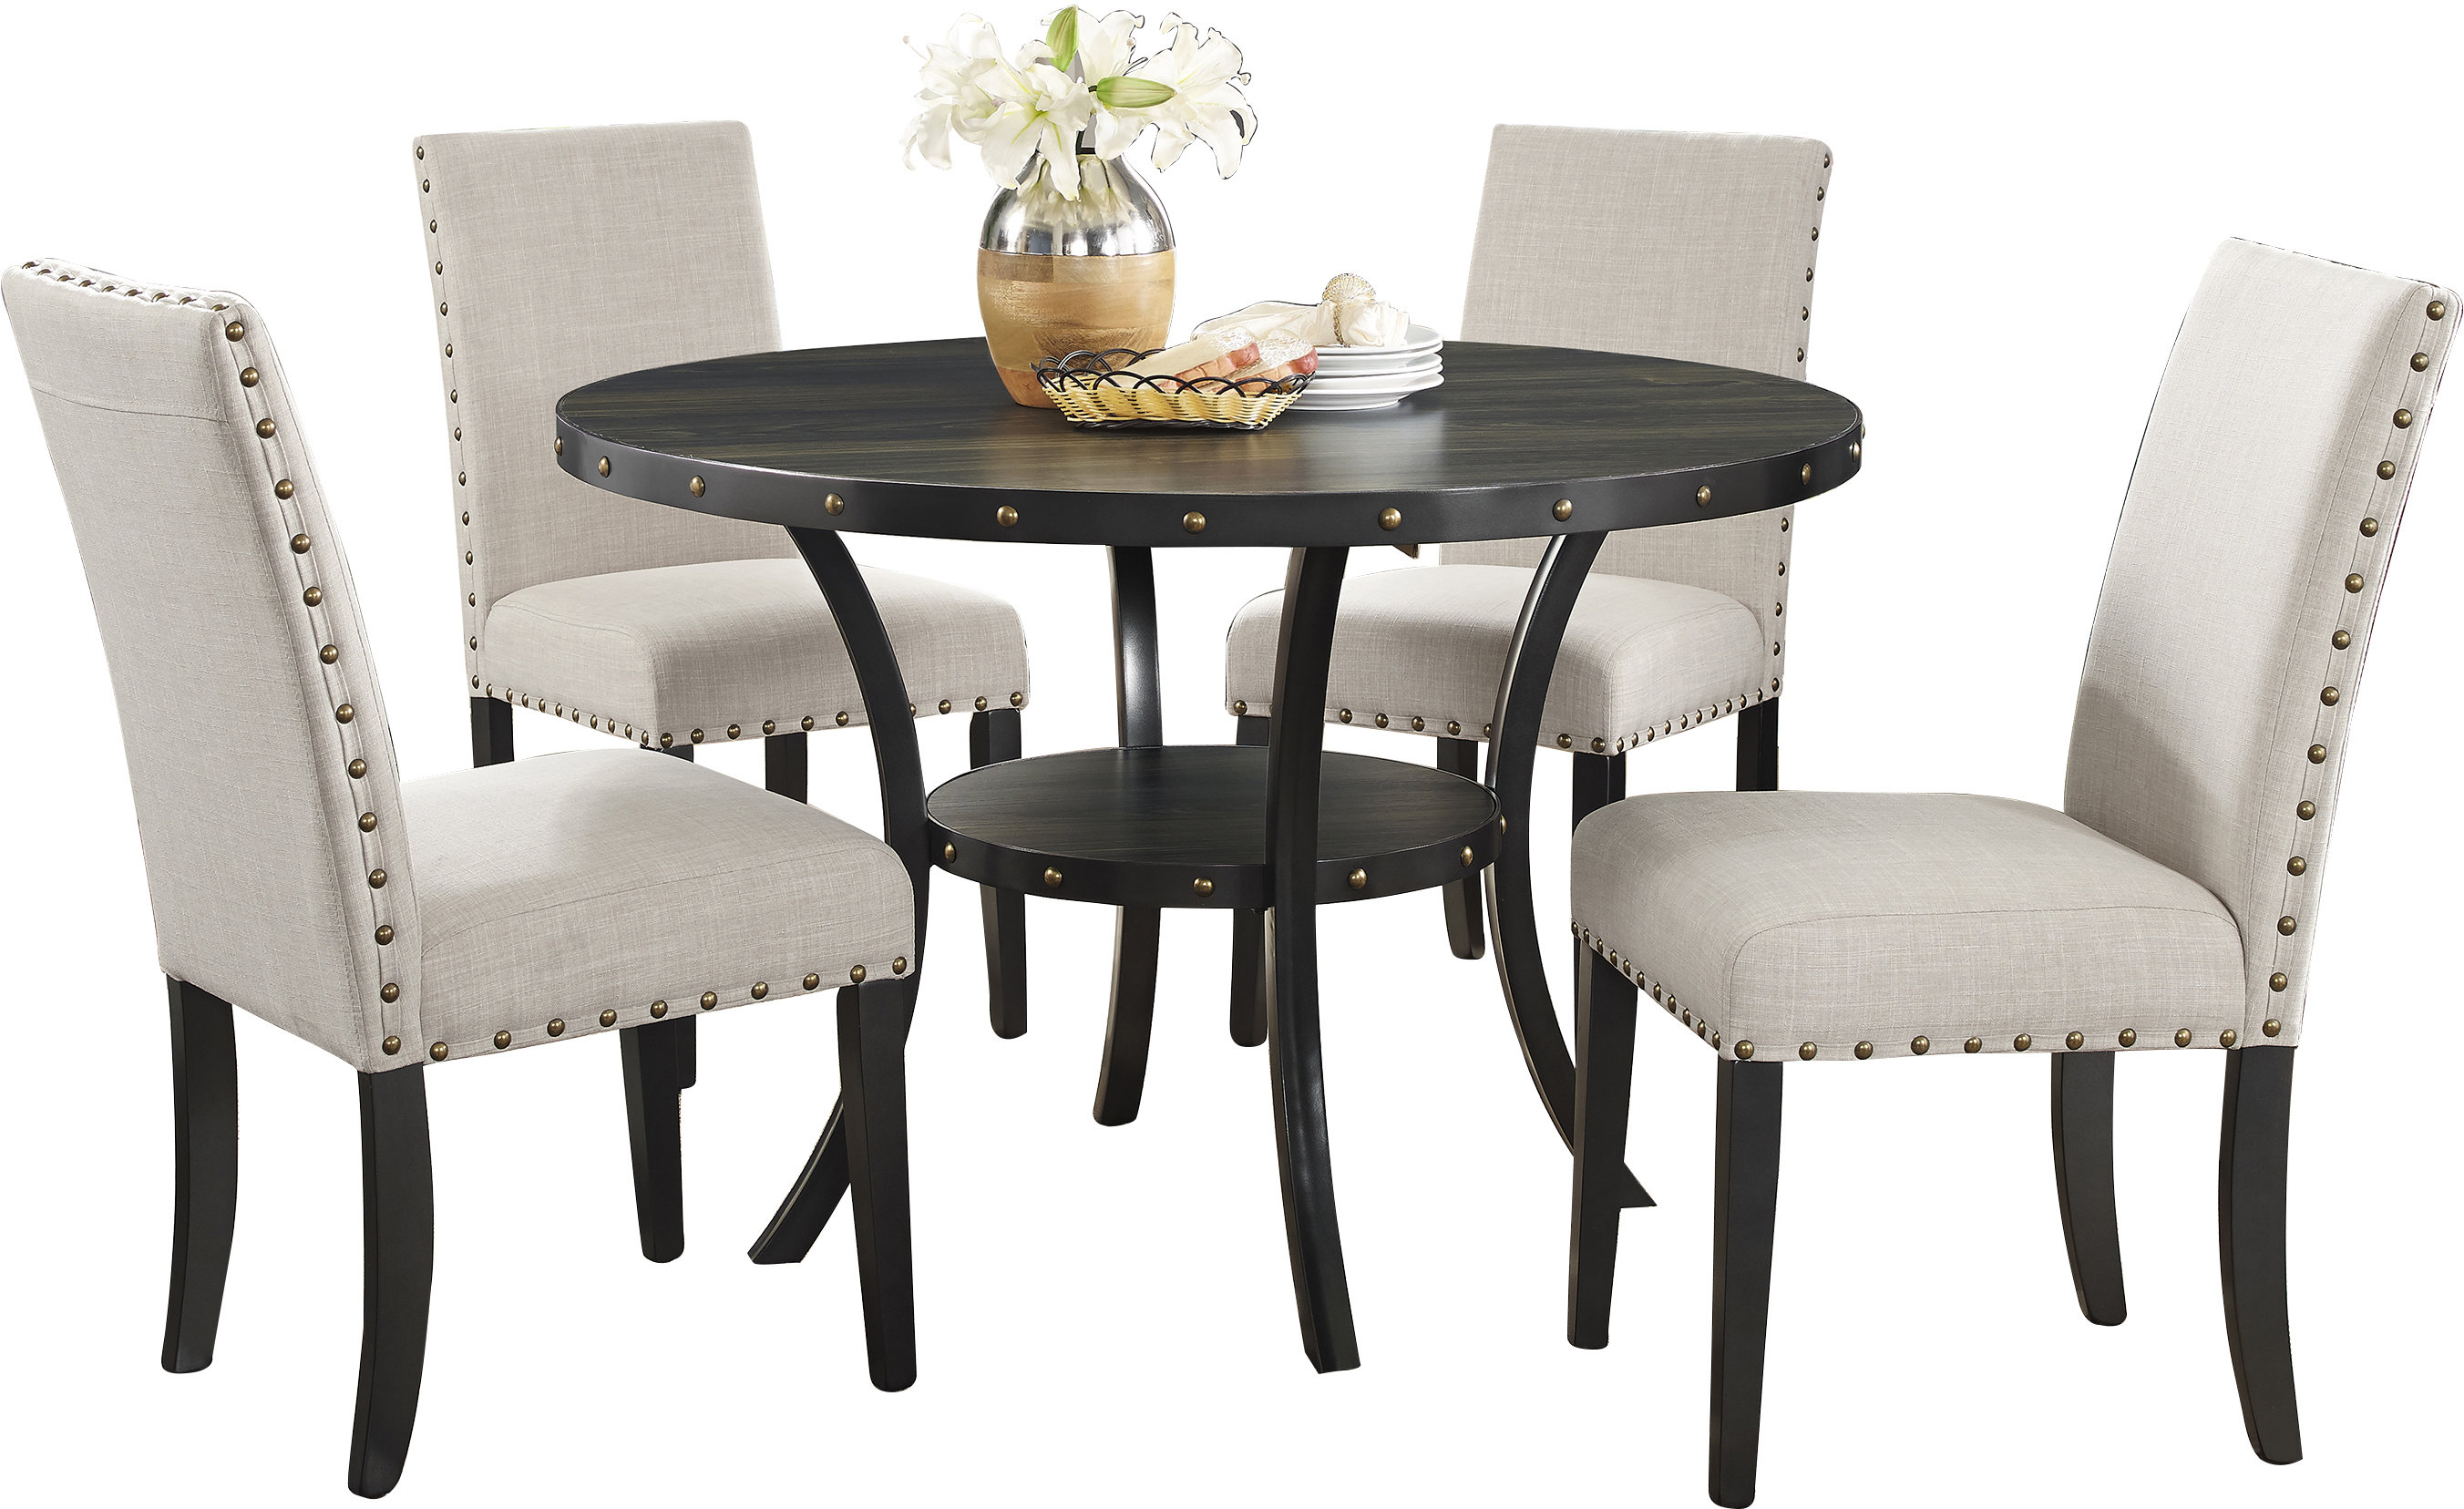 Liles 5 Piece Breakfast Nook Dining Sets Throughout Most Up To Date Amy 5 Piece Dining Set & Reviews (View 16 of 25)